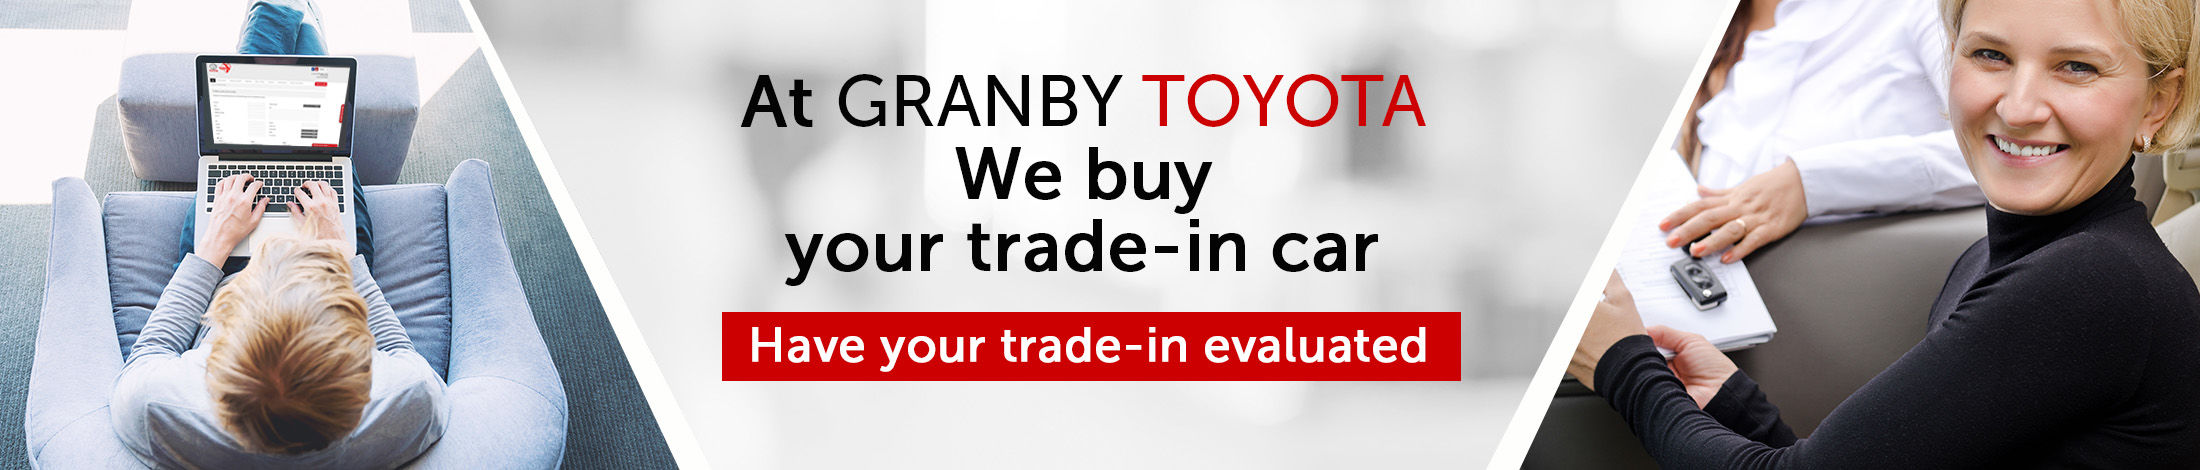 We buy your trade-in car